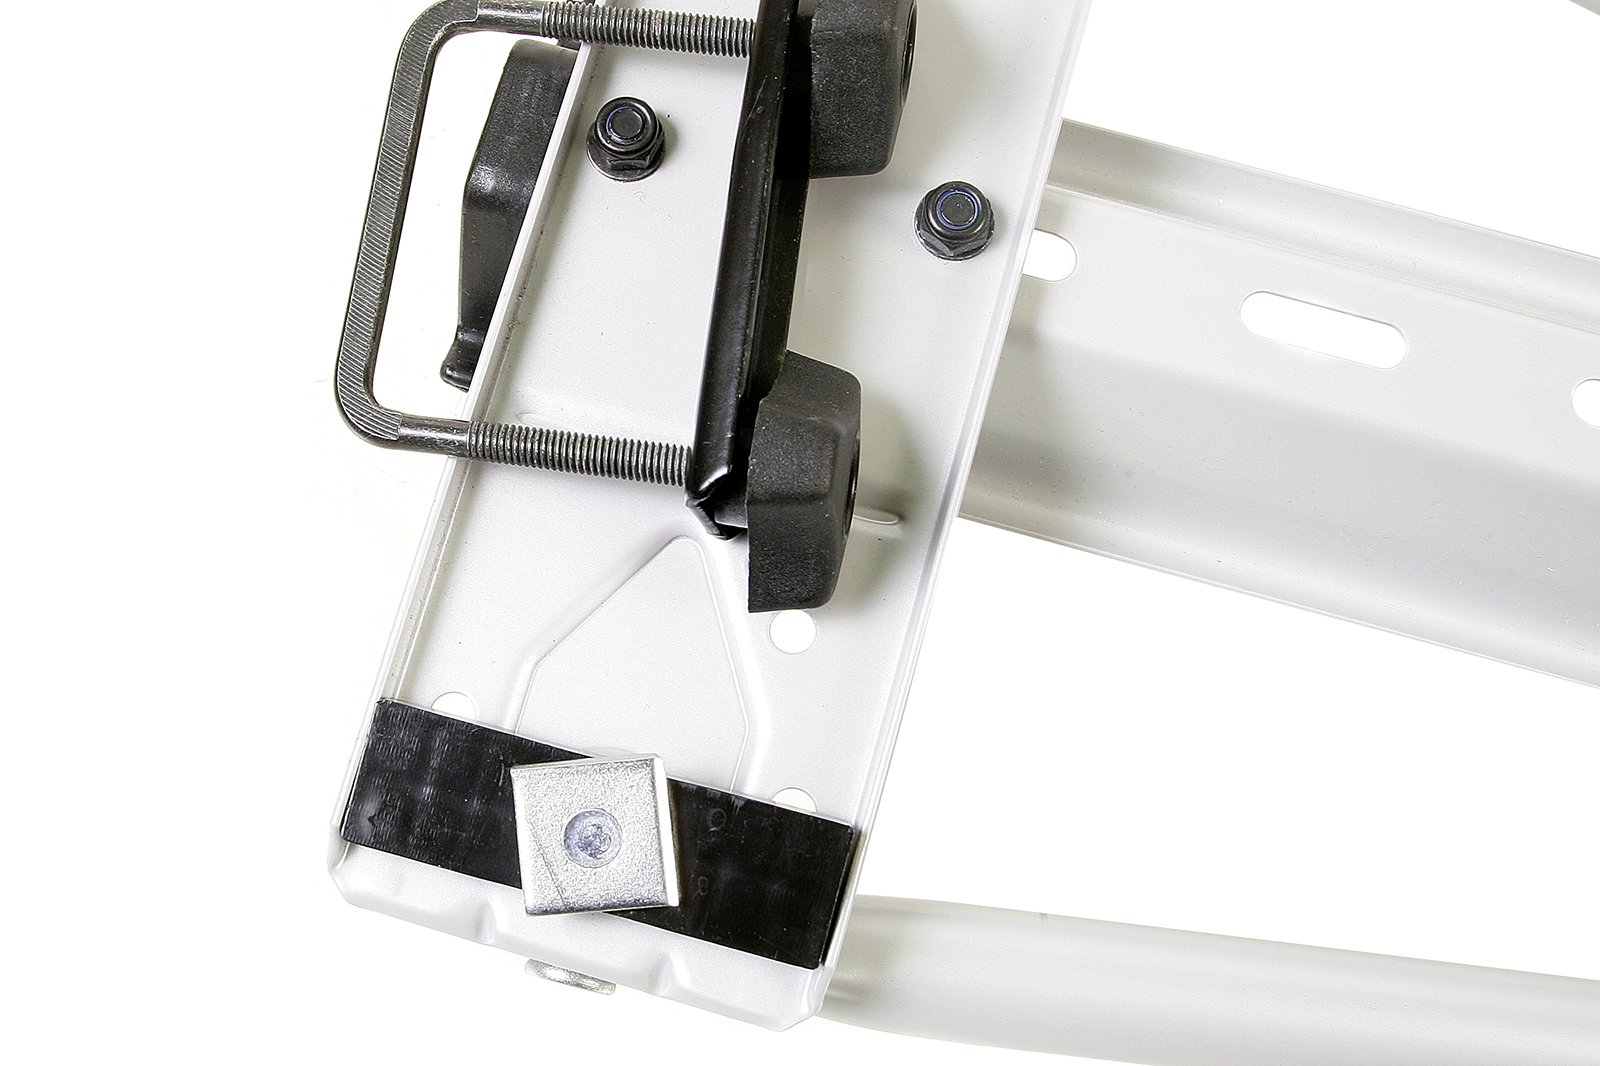 Compatibility with current roof bars, and bars you may buy in the future, is a major consideration with roof-mounted racks.